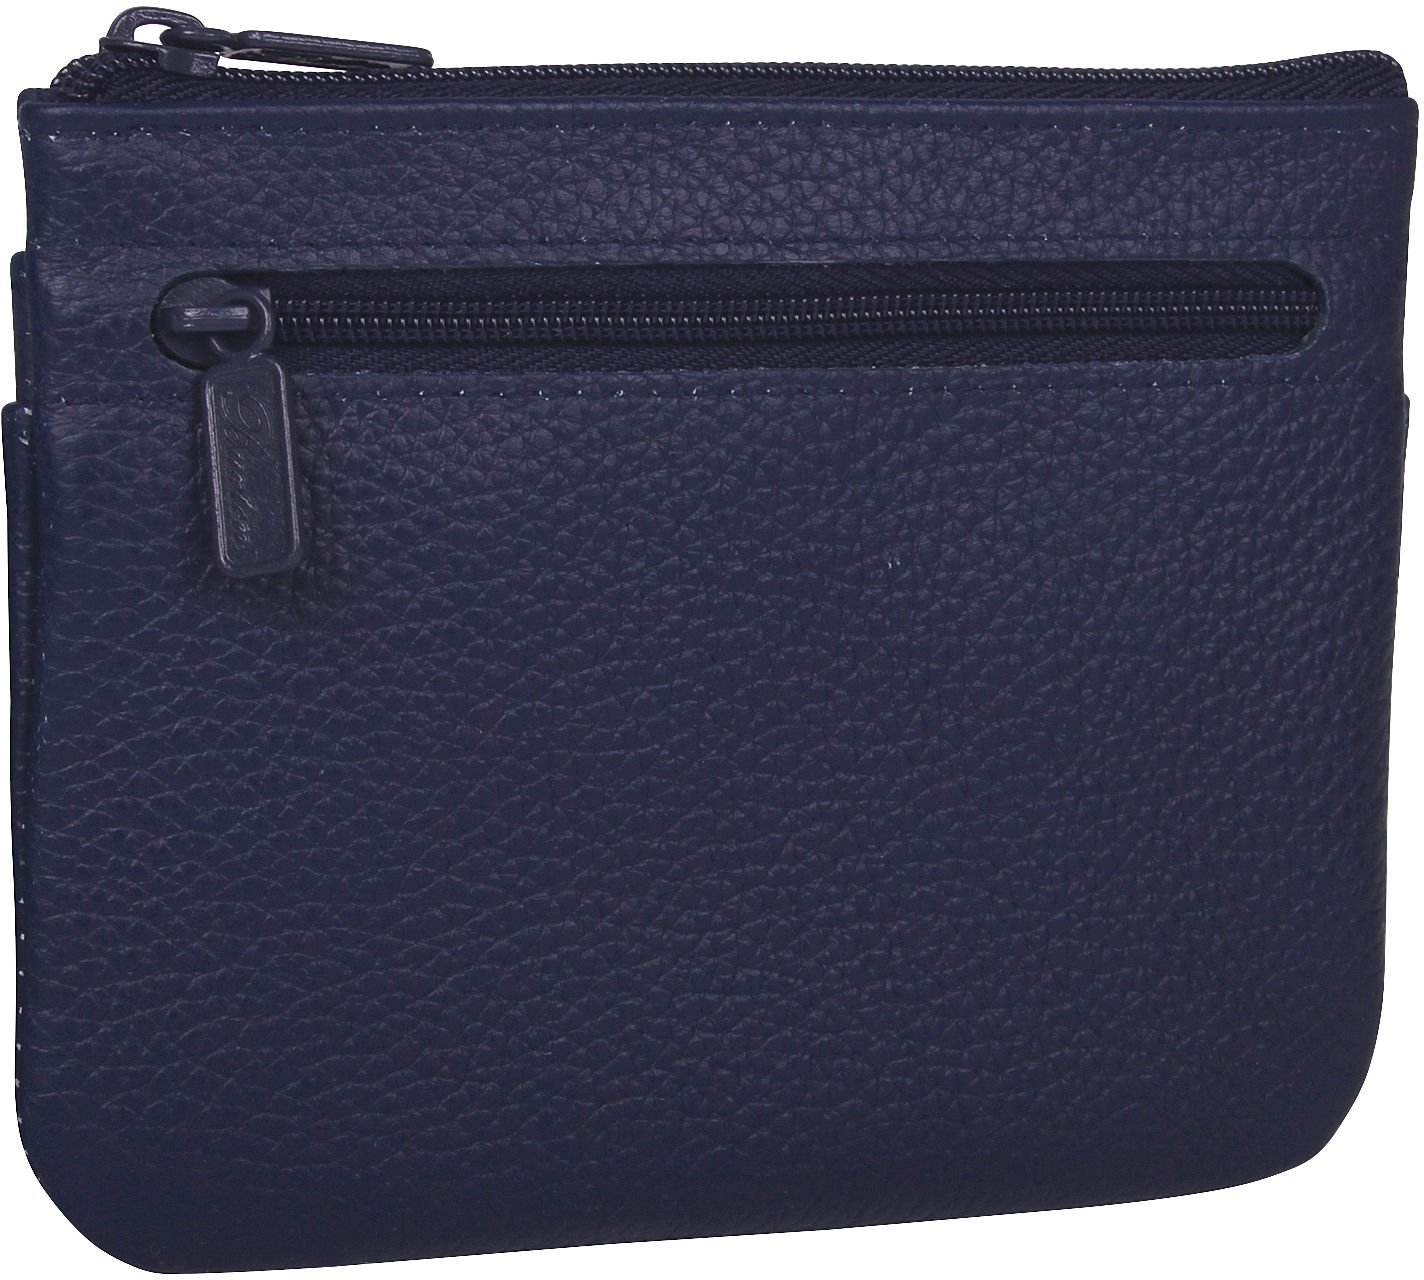 Buxton Womens Leather ID Coin Card Case Wallet, Navy,One Size